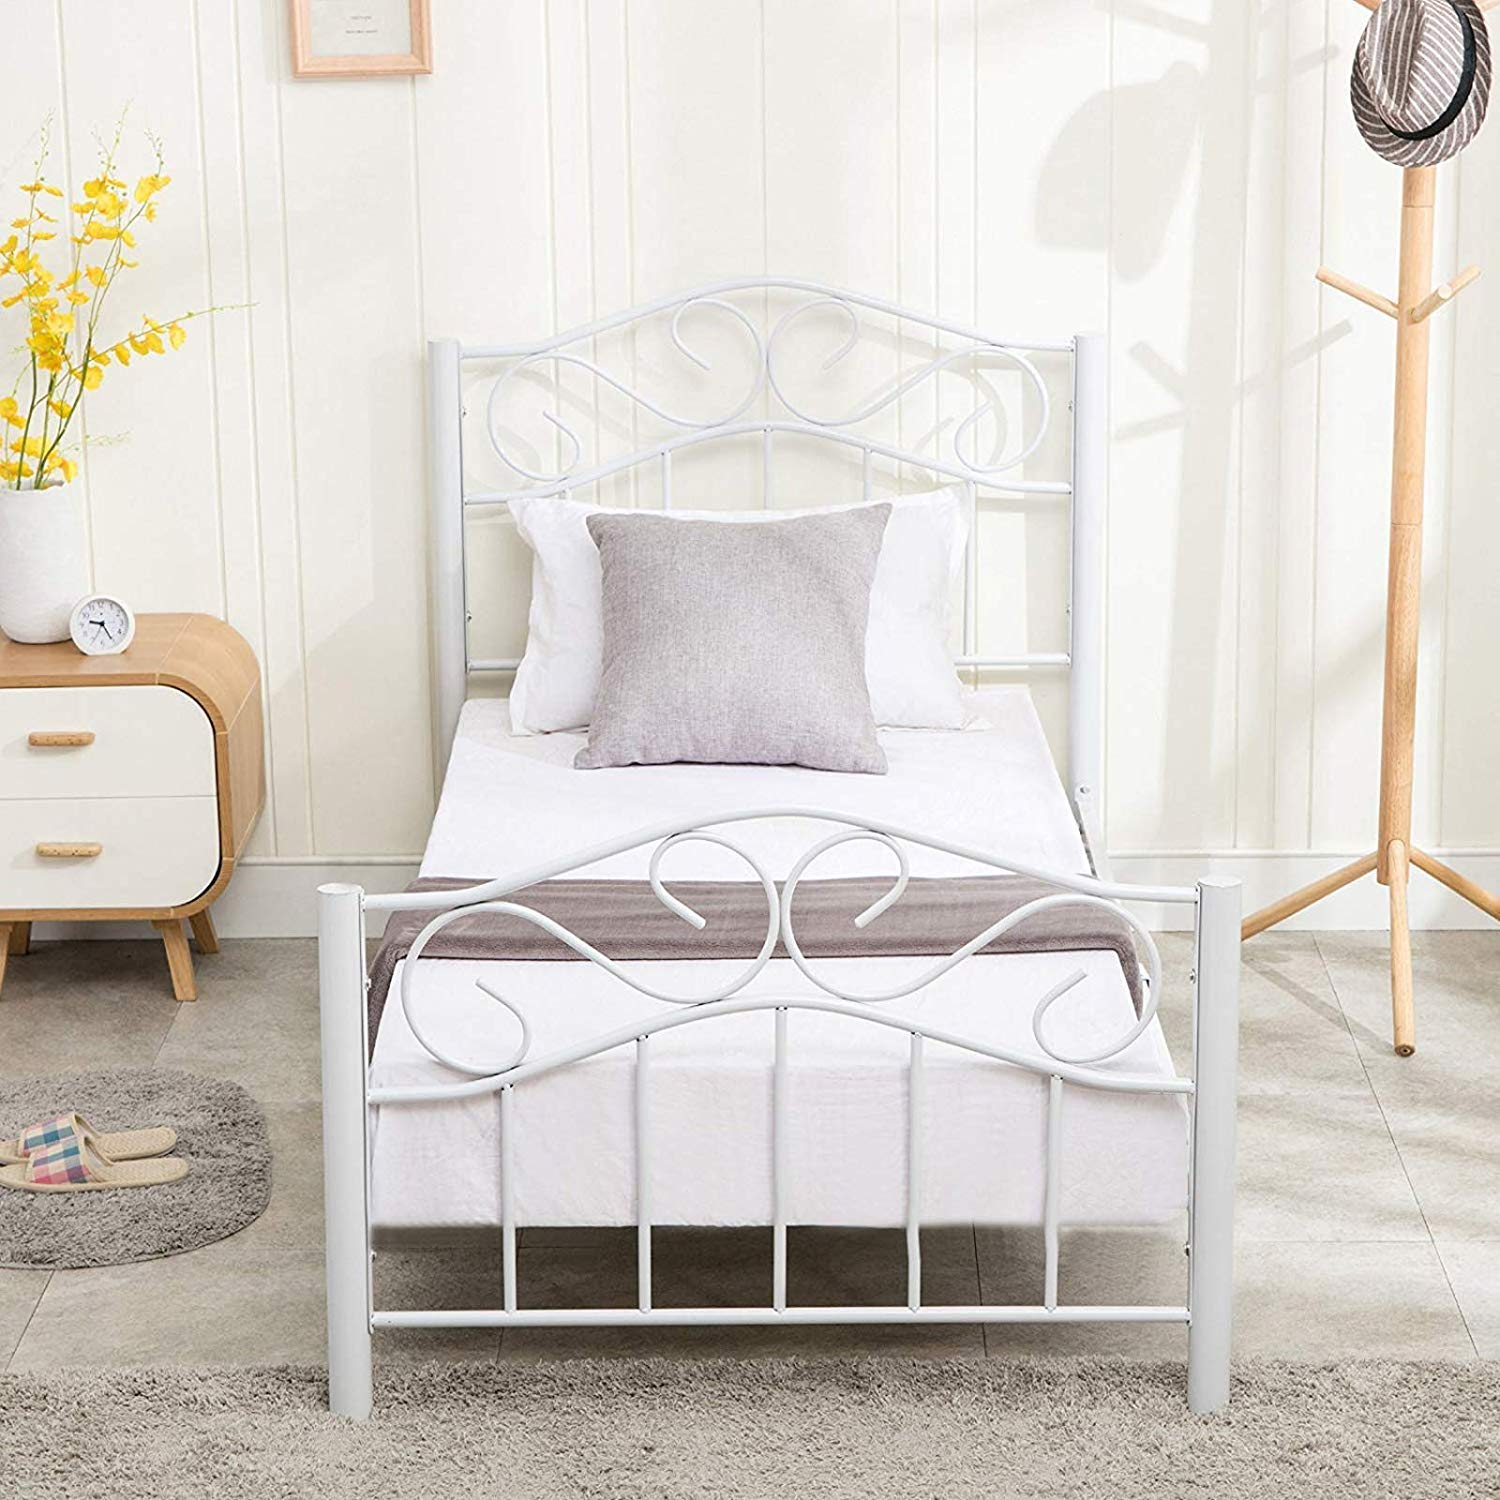 mecor Twin Curved Metal Bed Frame Mattress Foundation Platform Bed for Kids Girls Boys Adults with Steel Headboard Footboard,No Box Spring Needed,White Twin Size